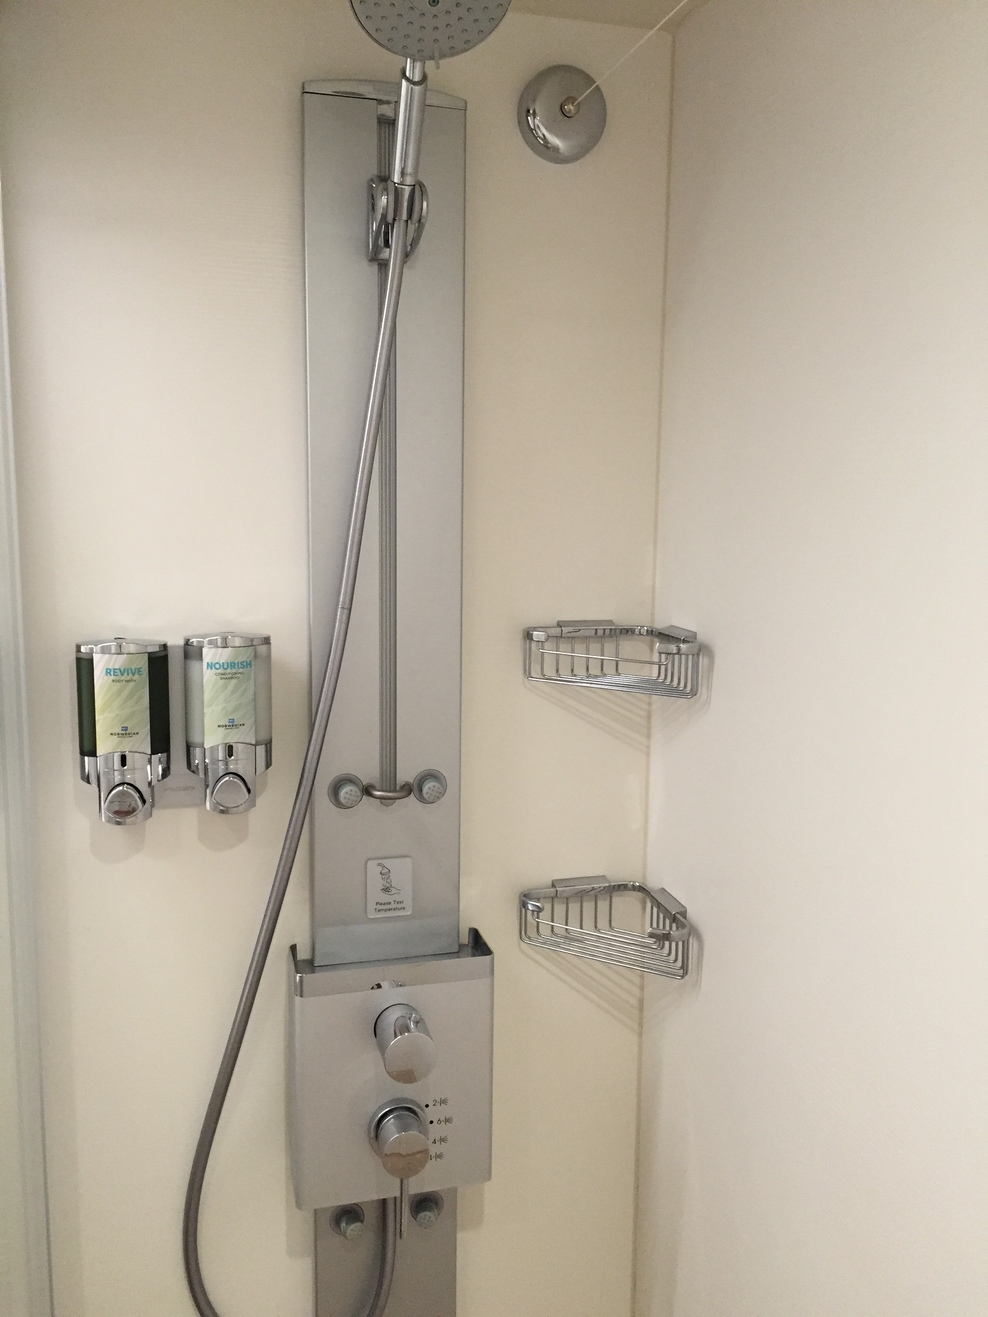 7 shower heads in shower: Norwegian Escape Cruise Ship - Cruise Critic